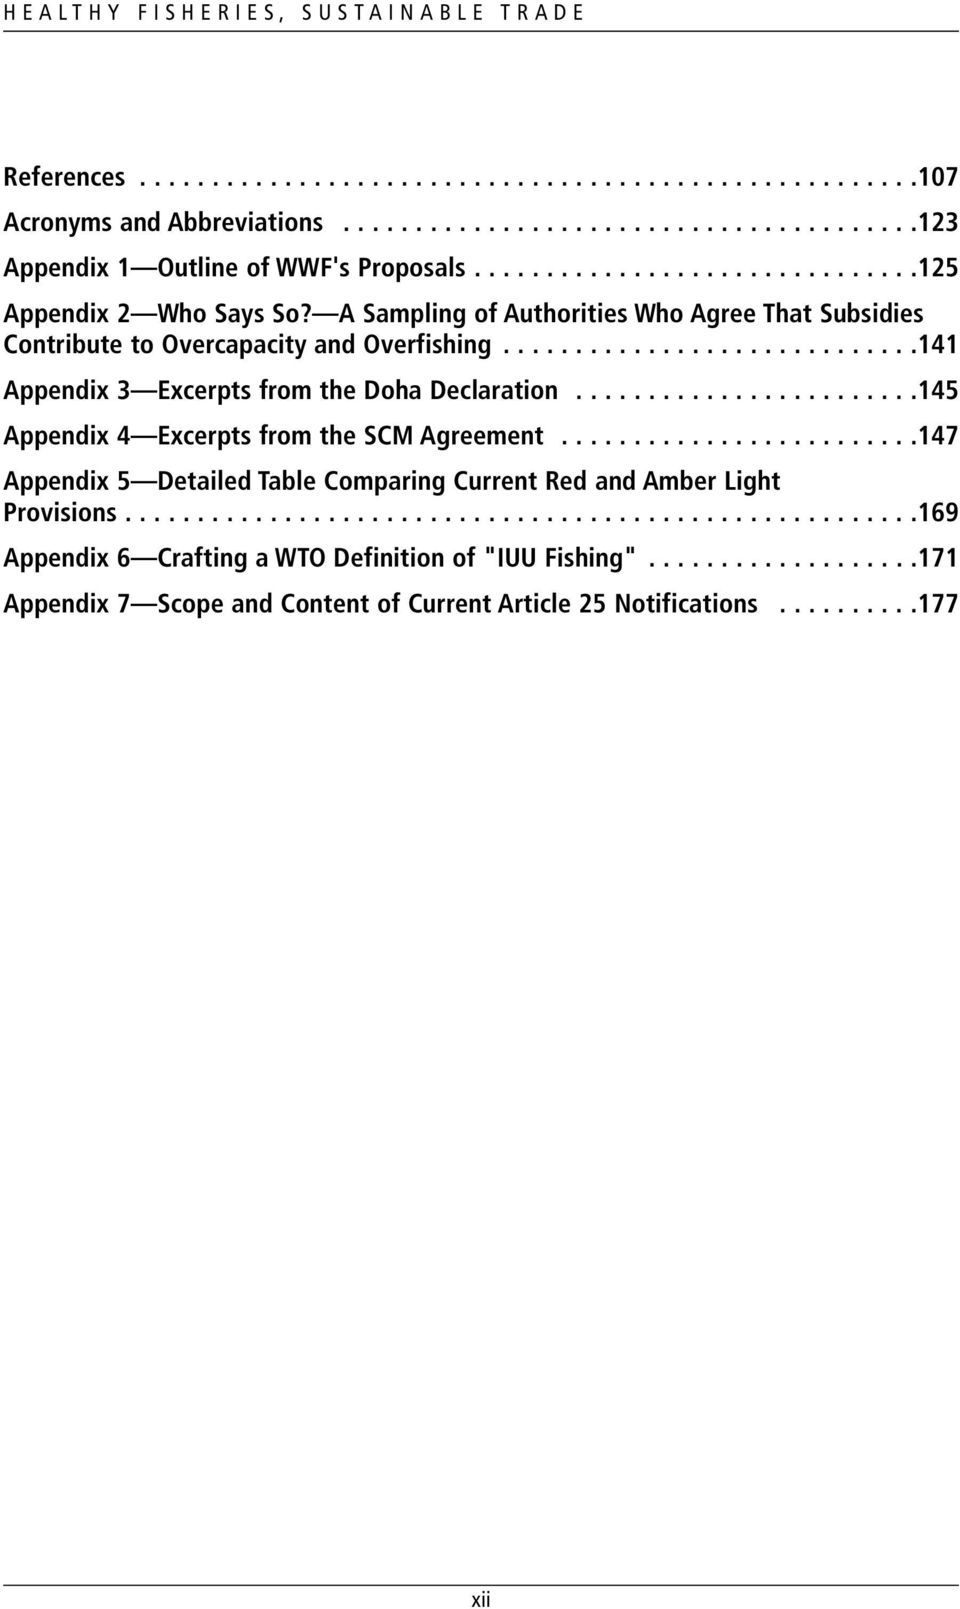 ............................141 Appendix 3 Excerpts from the Doha Declaration........................145 Appendix 4 Excerpts from the SCM Agreement.